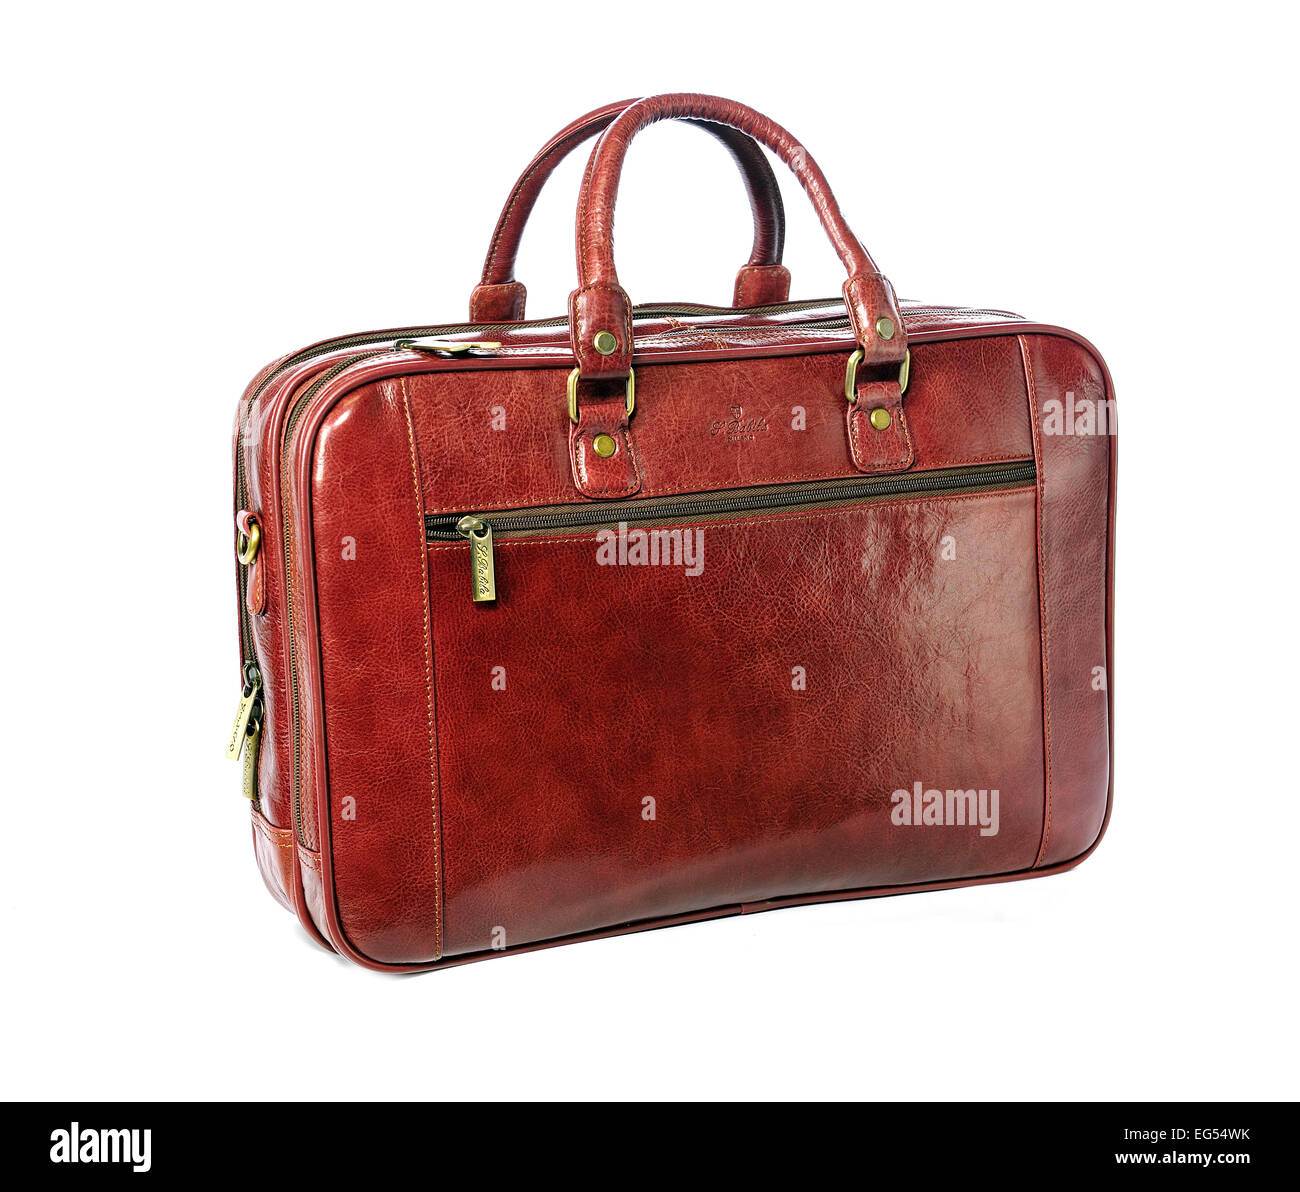 Tan / brown leather briefcase - Stock Image